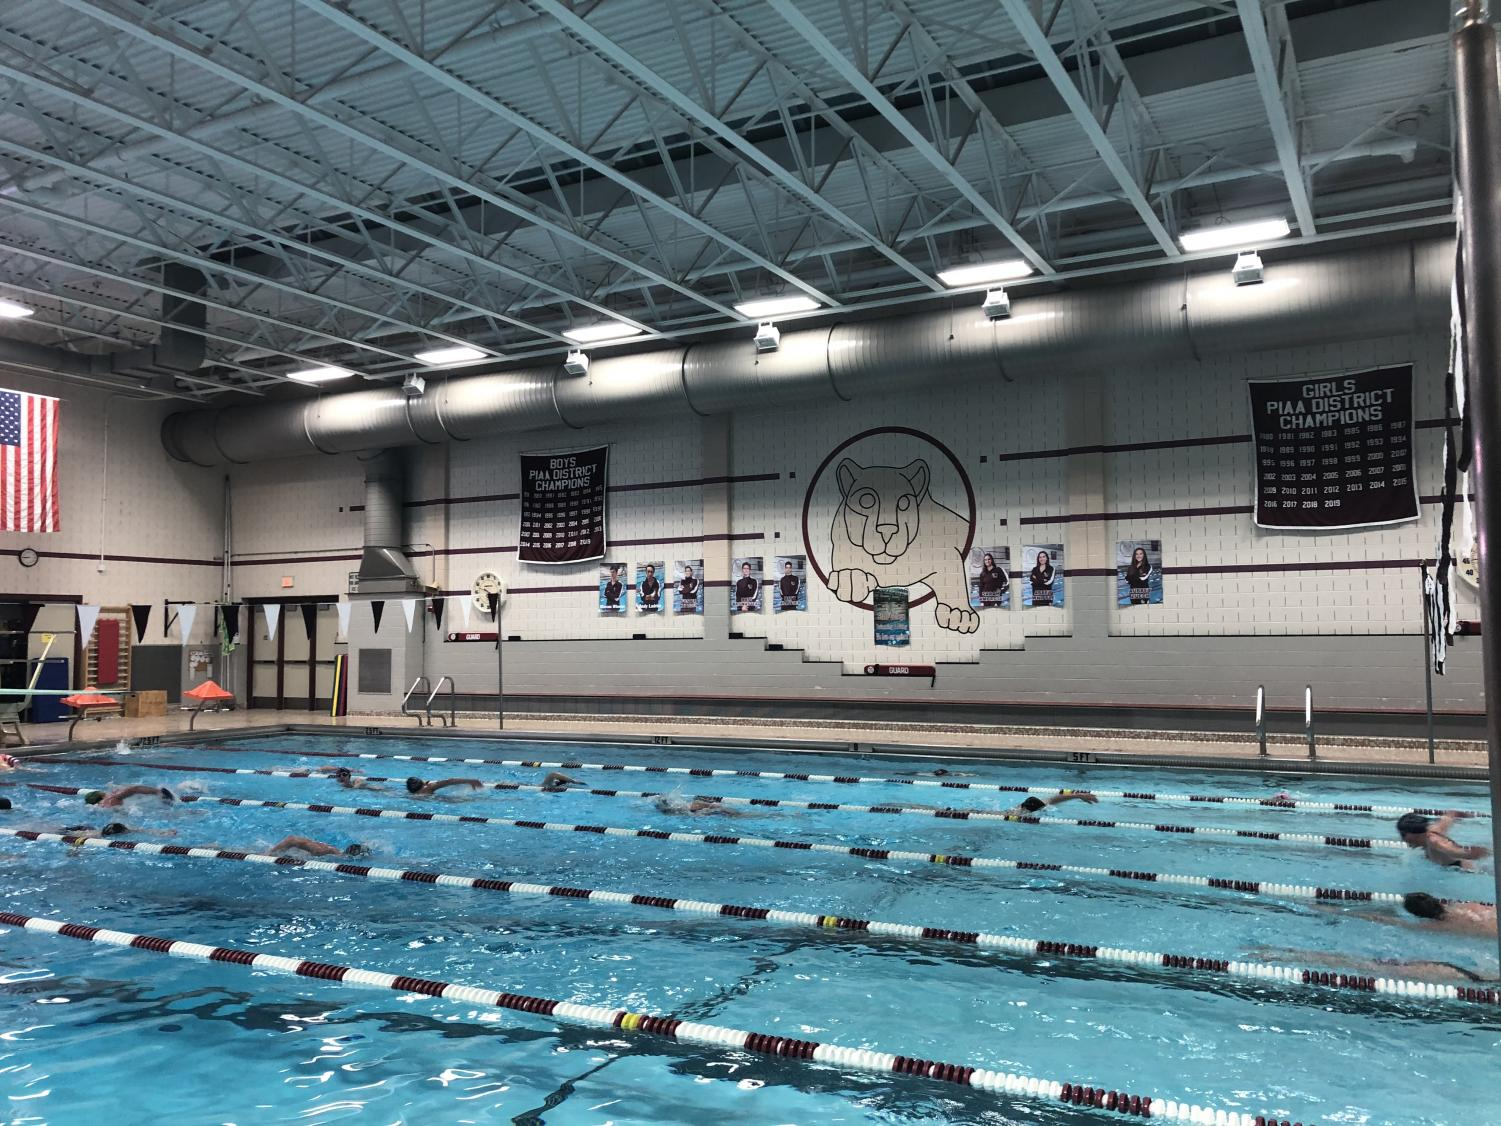 In recent weeks, an outdated and subjective PIAA rule has been used to encourage body shaming high school swimmers.